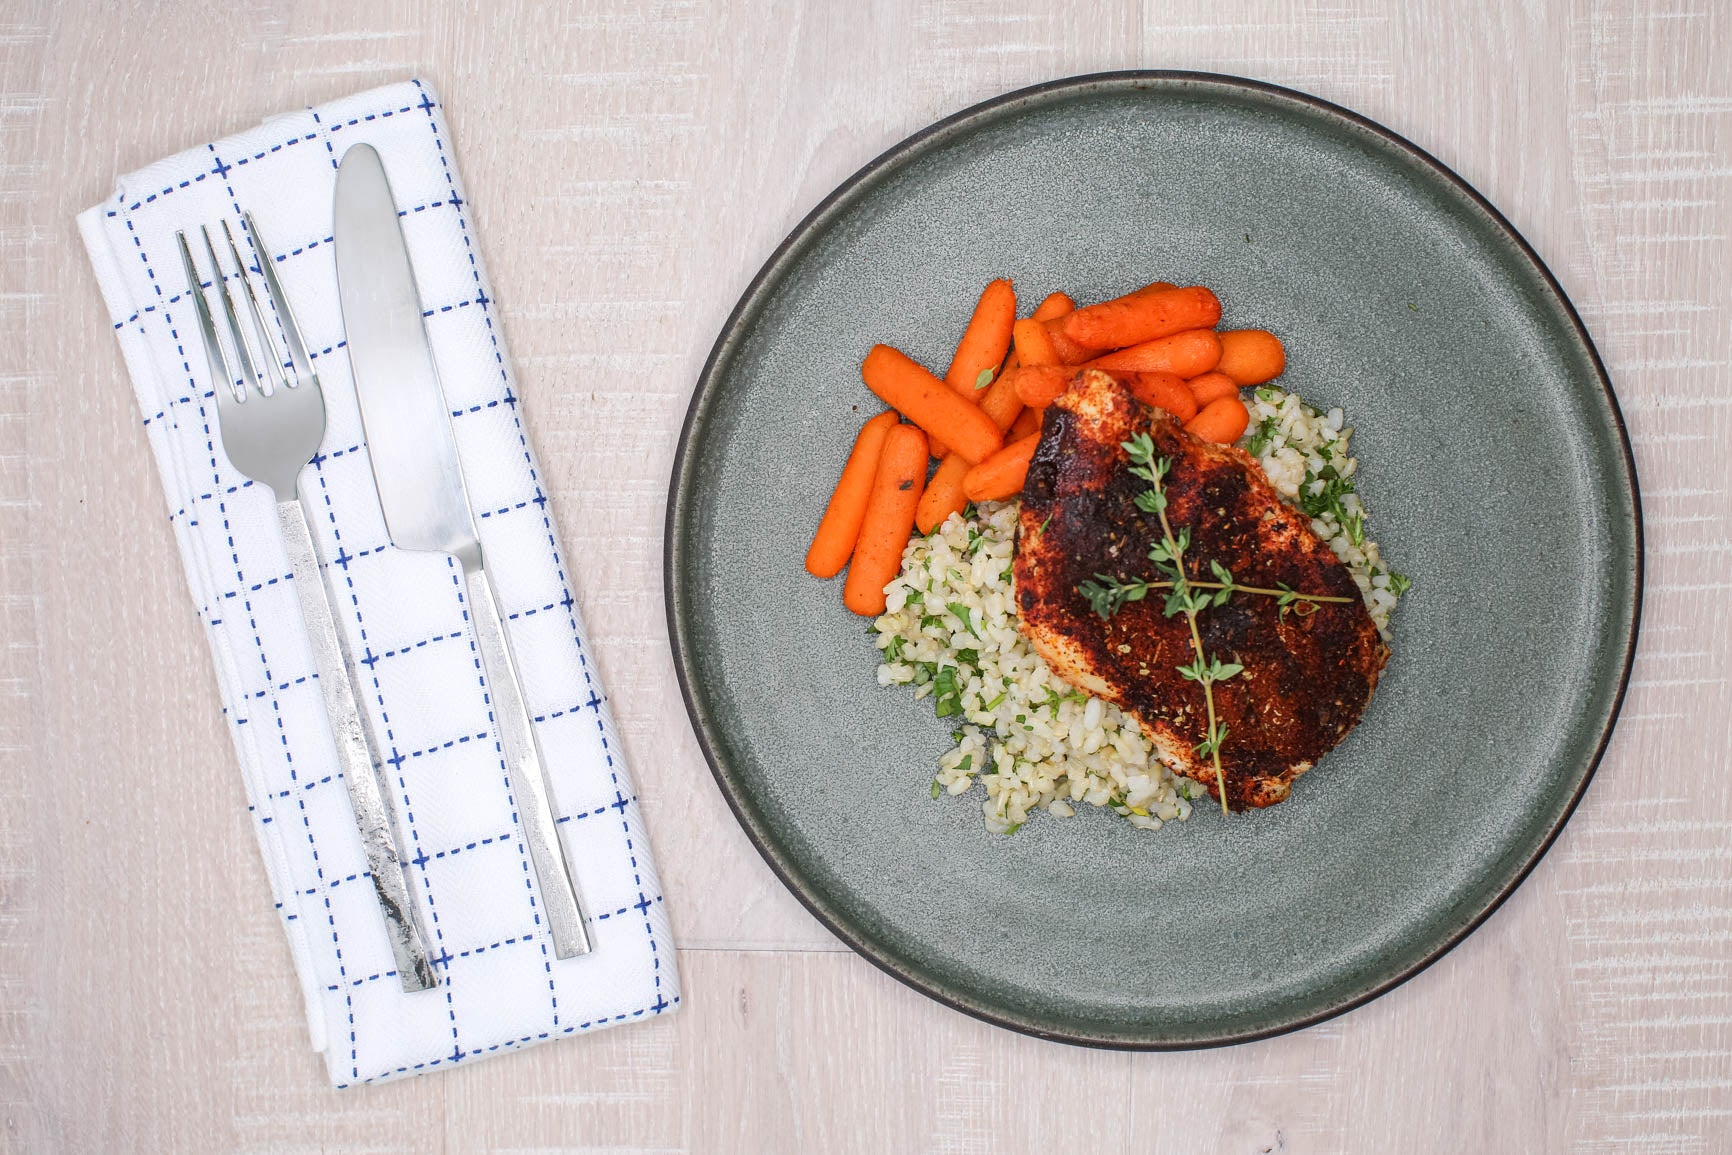 Blackened Chicken w/ Herbed Rice and Roasted Baby Carrots